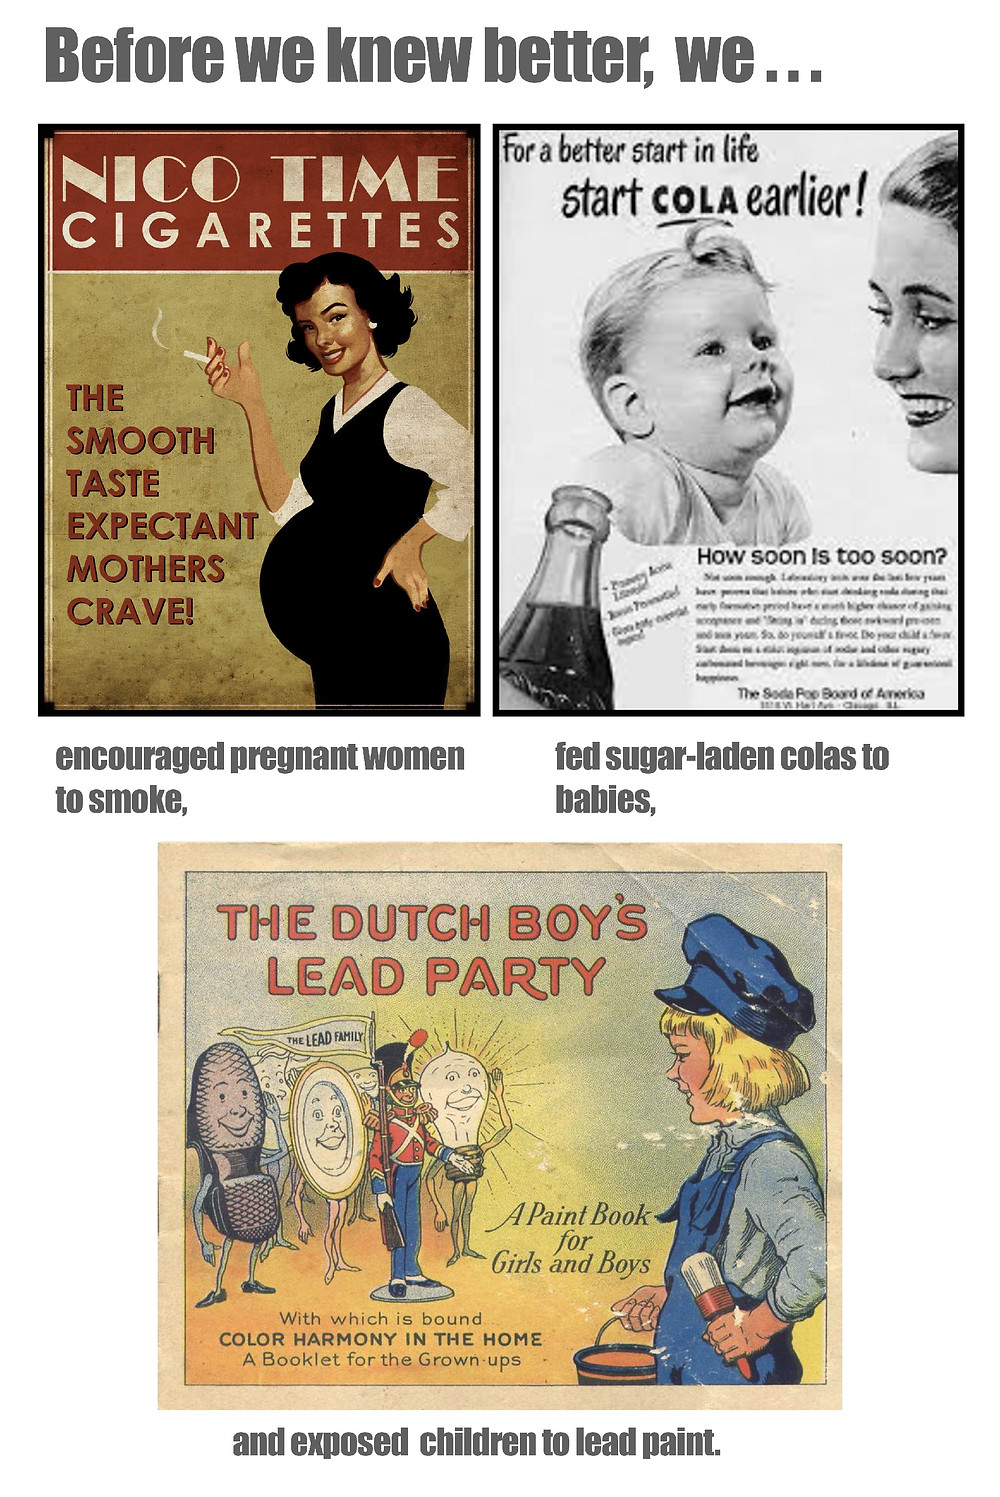 Before we knew better, we encourage women to smoke, fed sugar-laden colas to babies, and exposed children to lead paint.